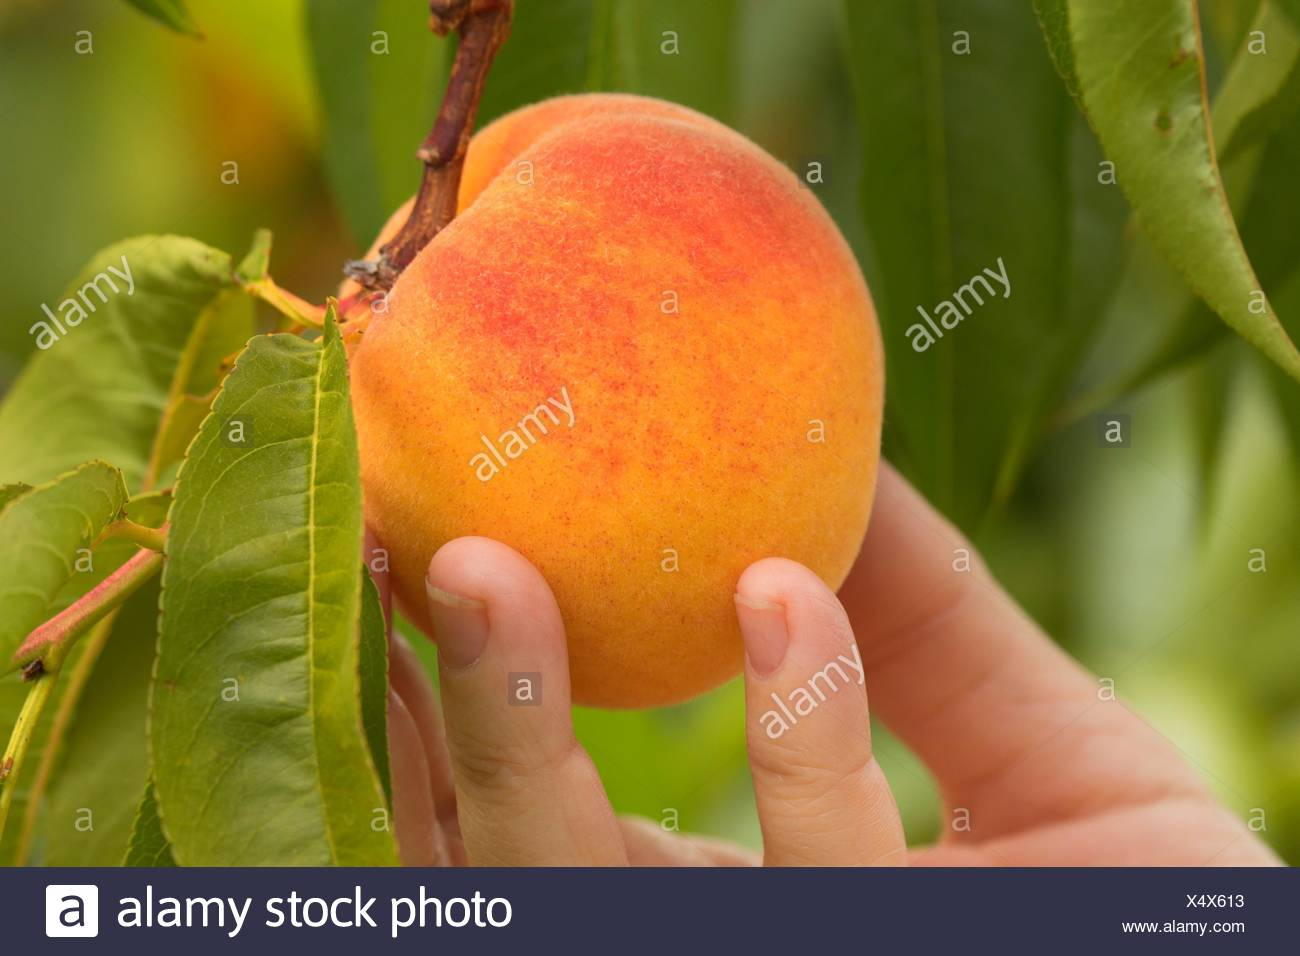 Peach orchard at Adair's Orchards, Linn County, Oregon. - Stock Image